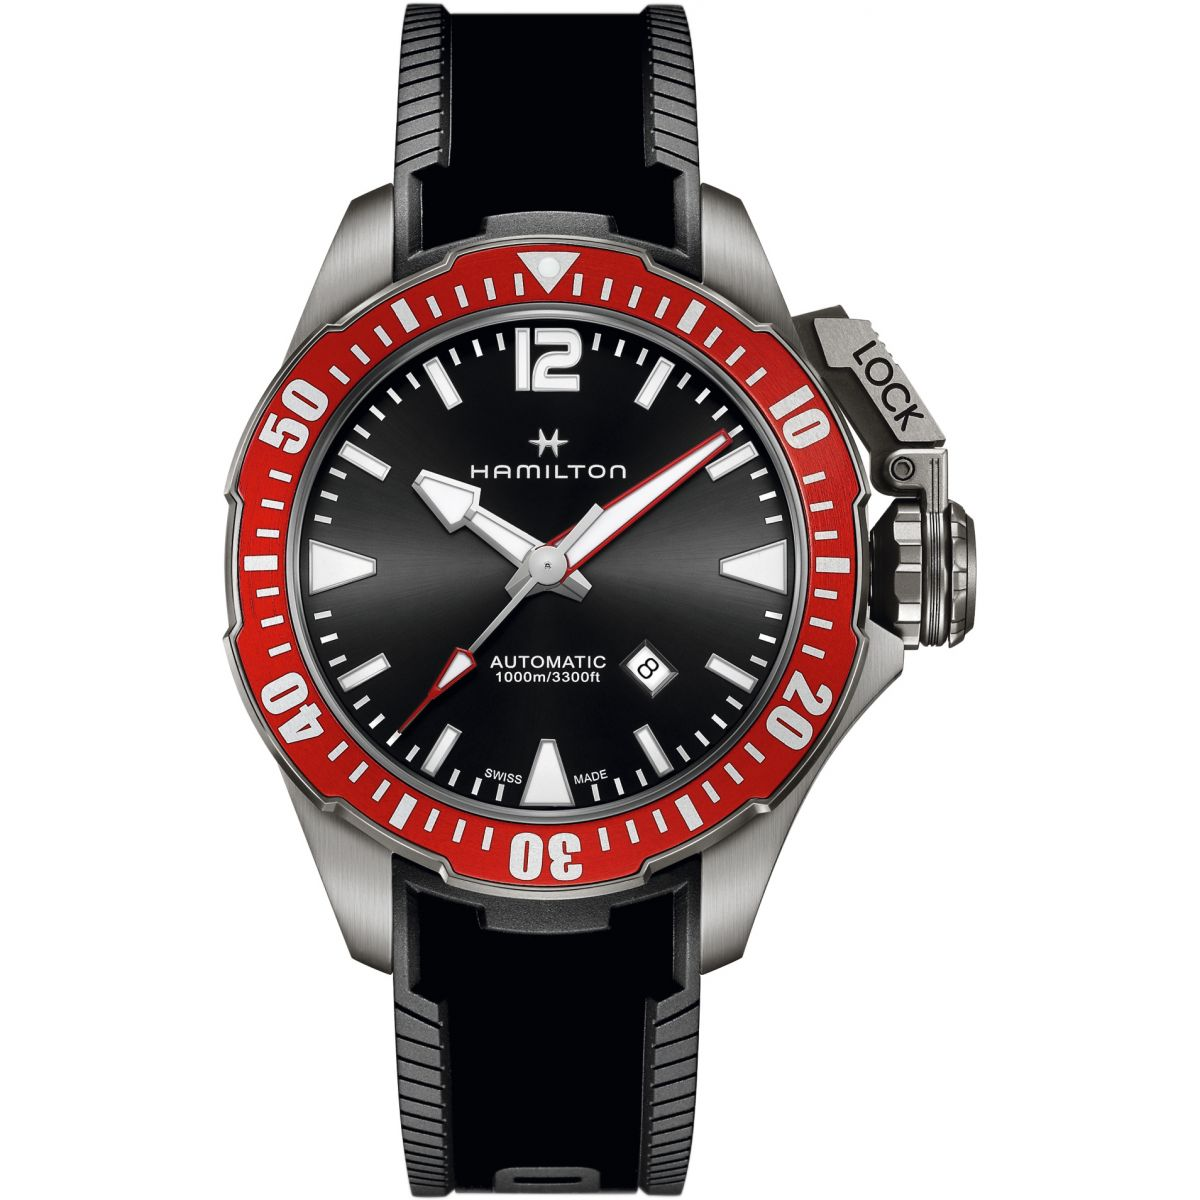 use formed naval watches the watch maloubier blogs and newly acquiring robert led equipment league claude diving diver combat they were lieutenant riffaud french mwc international navy by team suitable entry for